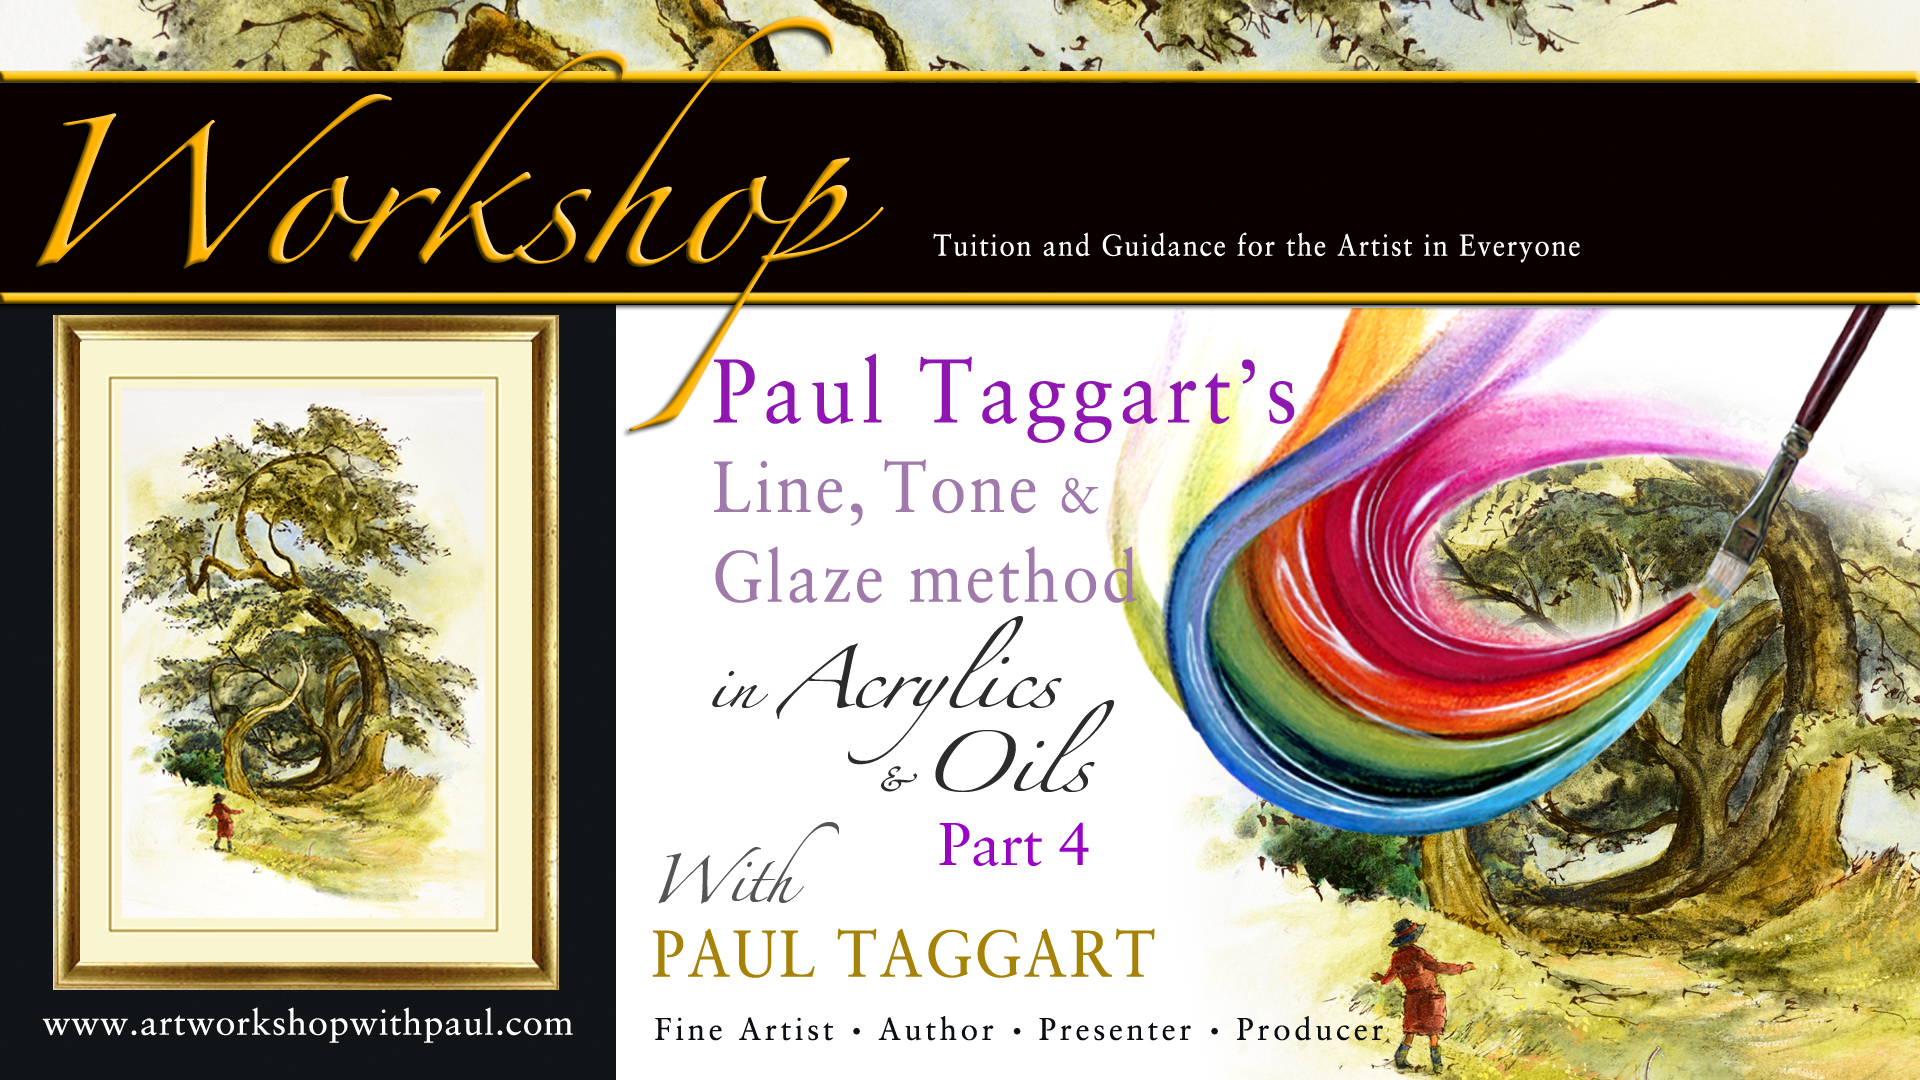 Paul taggarts newsletter unique tutorial workshop from artist unique tutorial workshop from artist author paul taggart kristyandbryce Choice Image